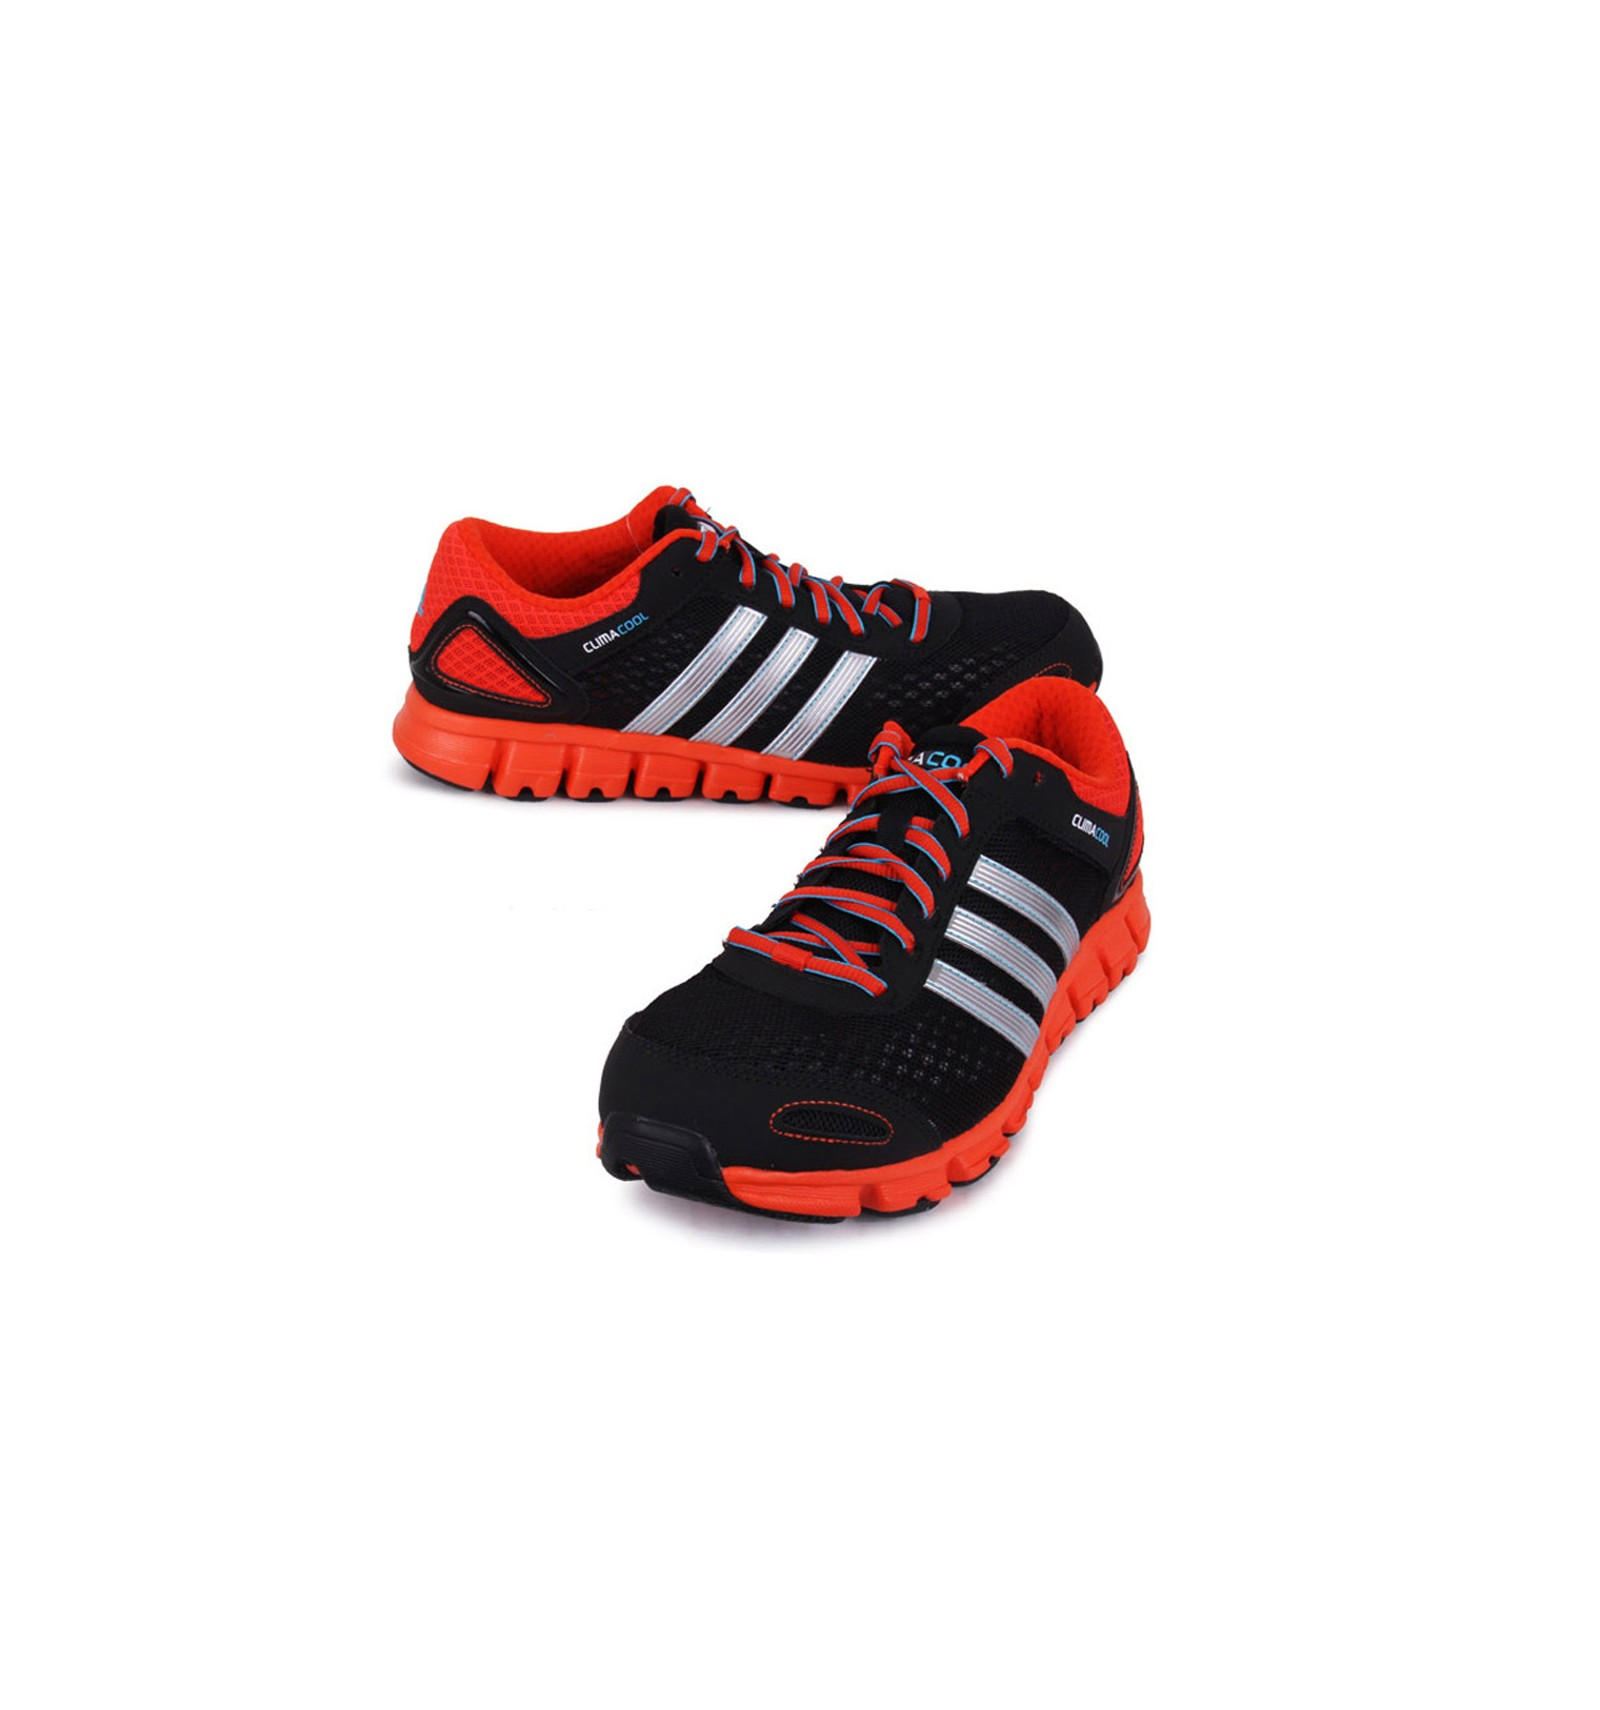 sneakers for cheap 3844f 338d0 ... Adidas CC Modulate M Climacool Zapatilla Negro ...